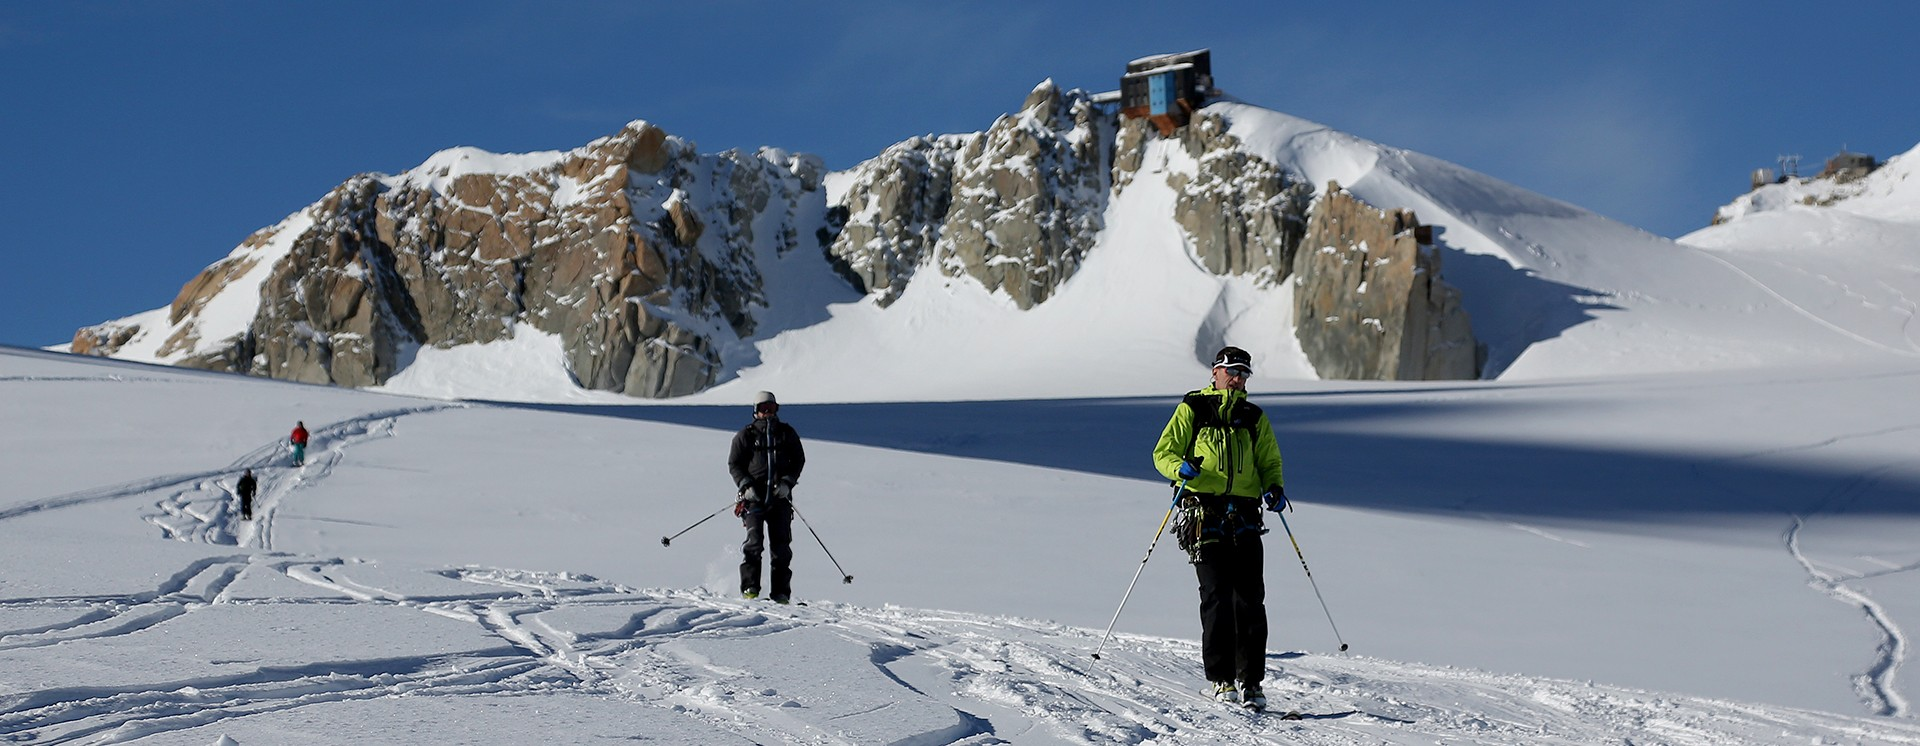 Incentives activities chamonix guides